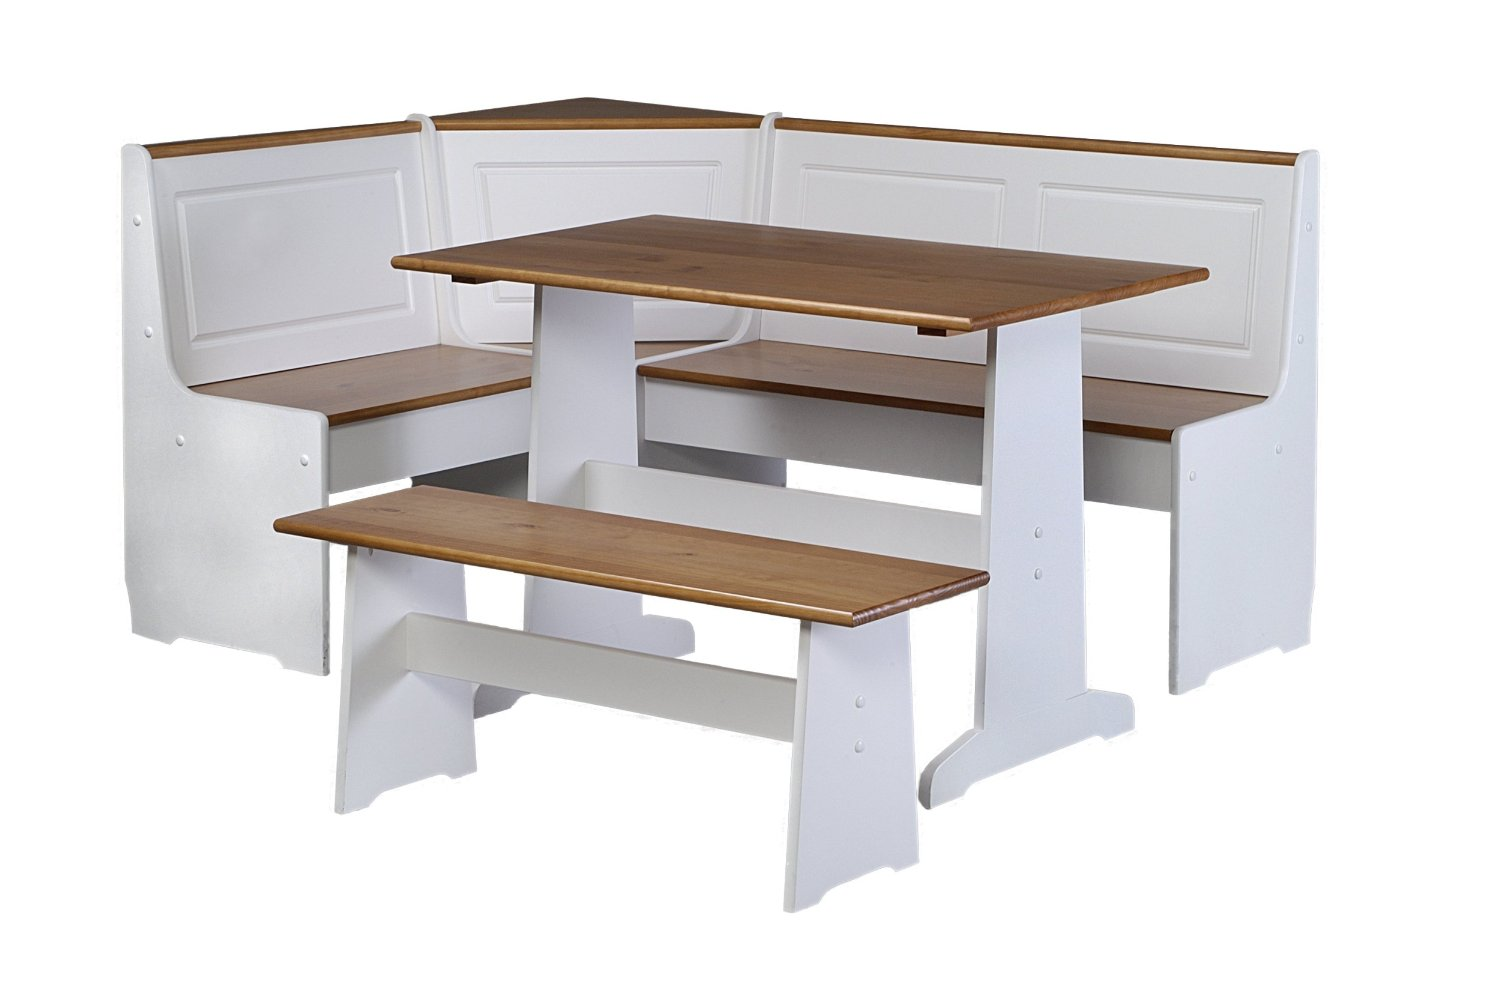 Image of: kitchen table bench corner